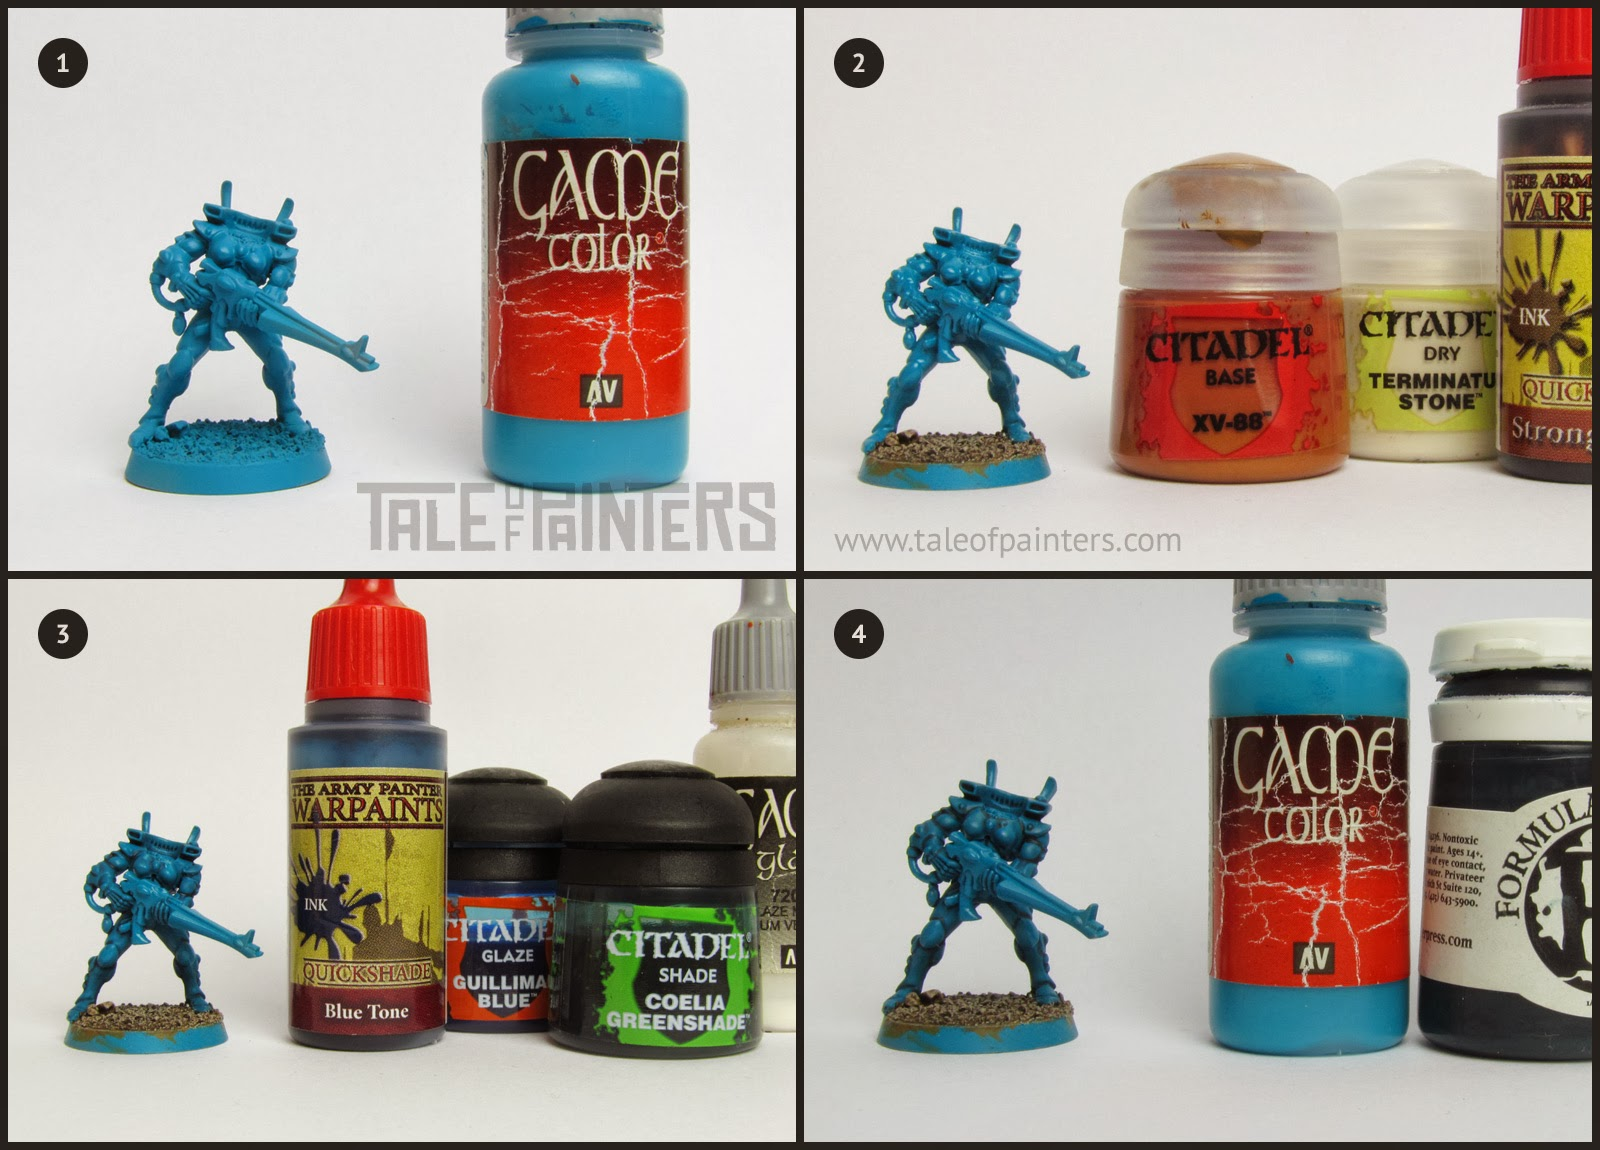 Painting miniatures color master primer - The Model Was Primed With A Army Painter S Uniform Grey Primer Any Primer Will Do But A Medium Grey Makes A Great Undercoat For Turquoise